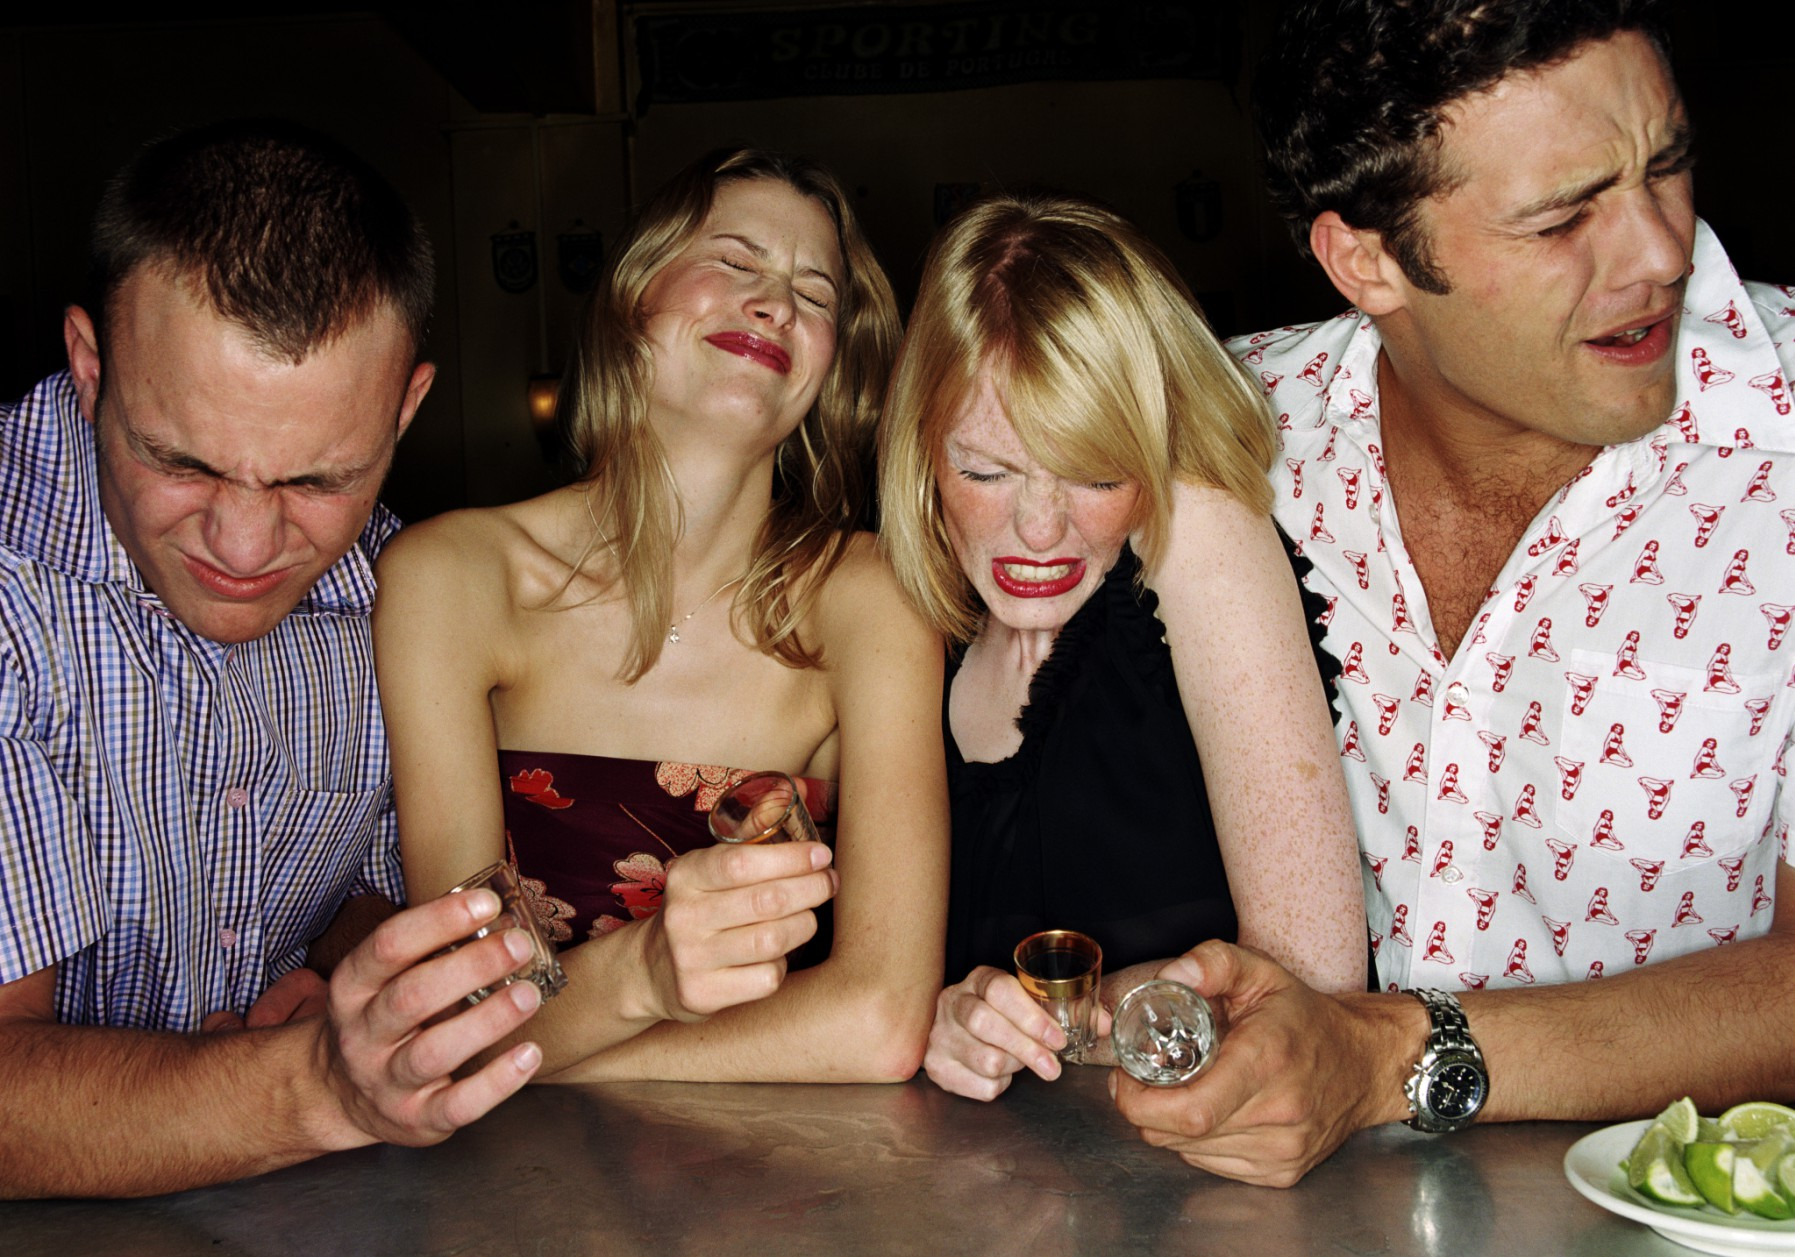 Four young friends drinking tequilla shots